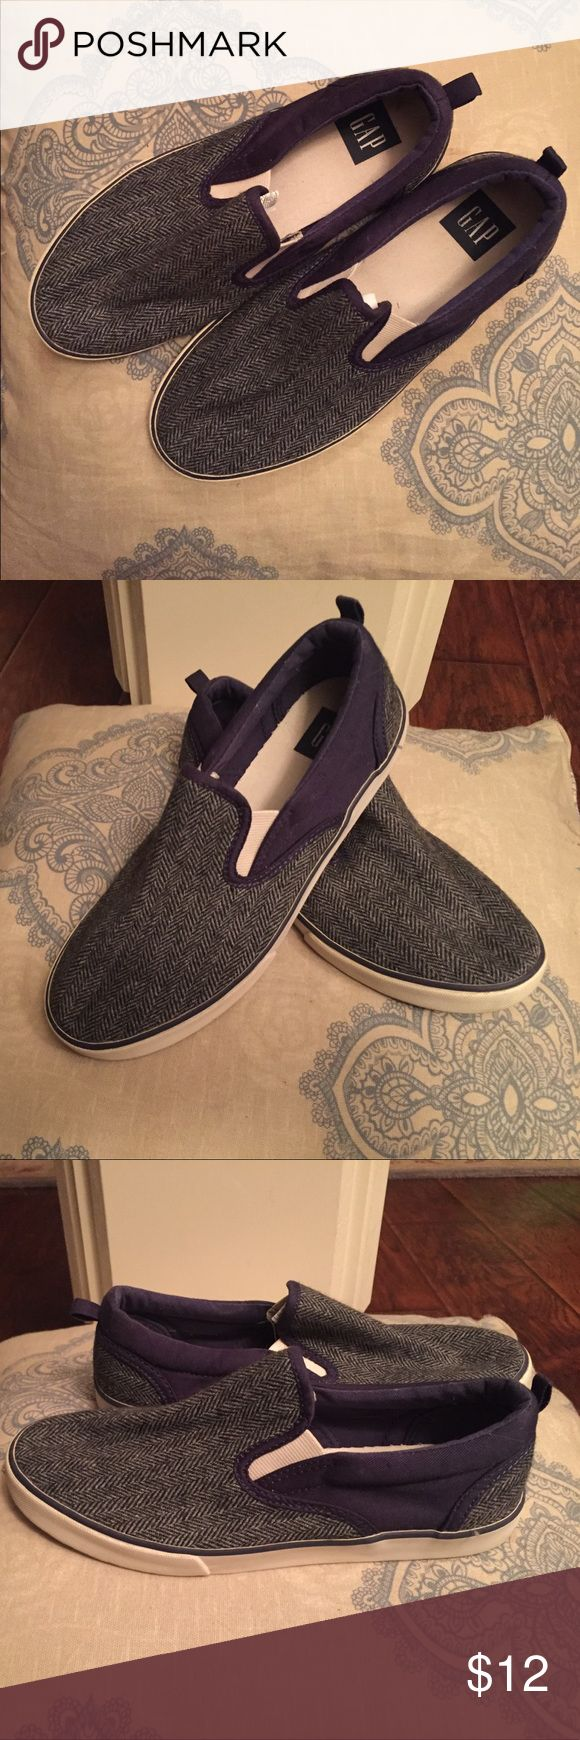 Boys shoes Super cute boys Gap shoes. Slip on gray and navy pattern. Barely worn, like new. Size 5 GAP Shoes Sneakers